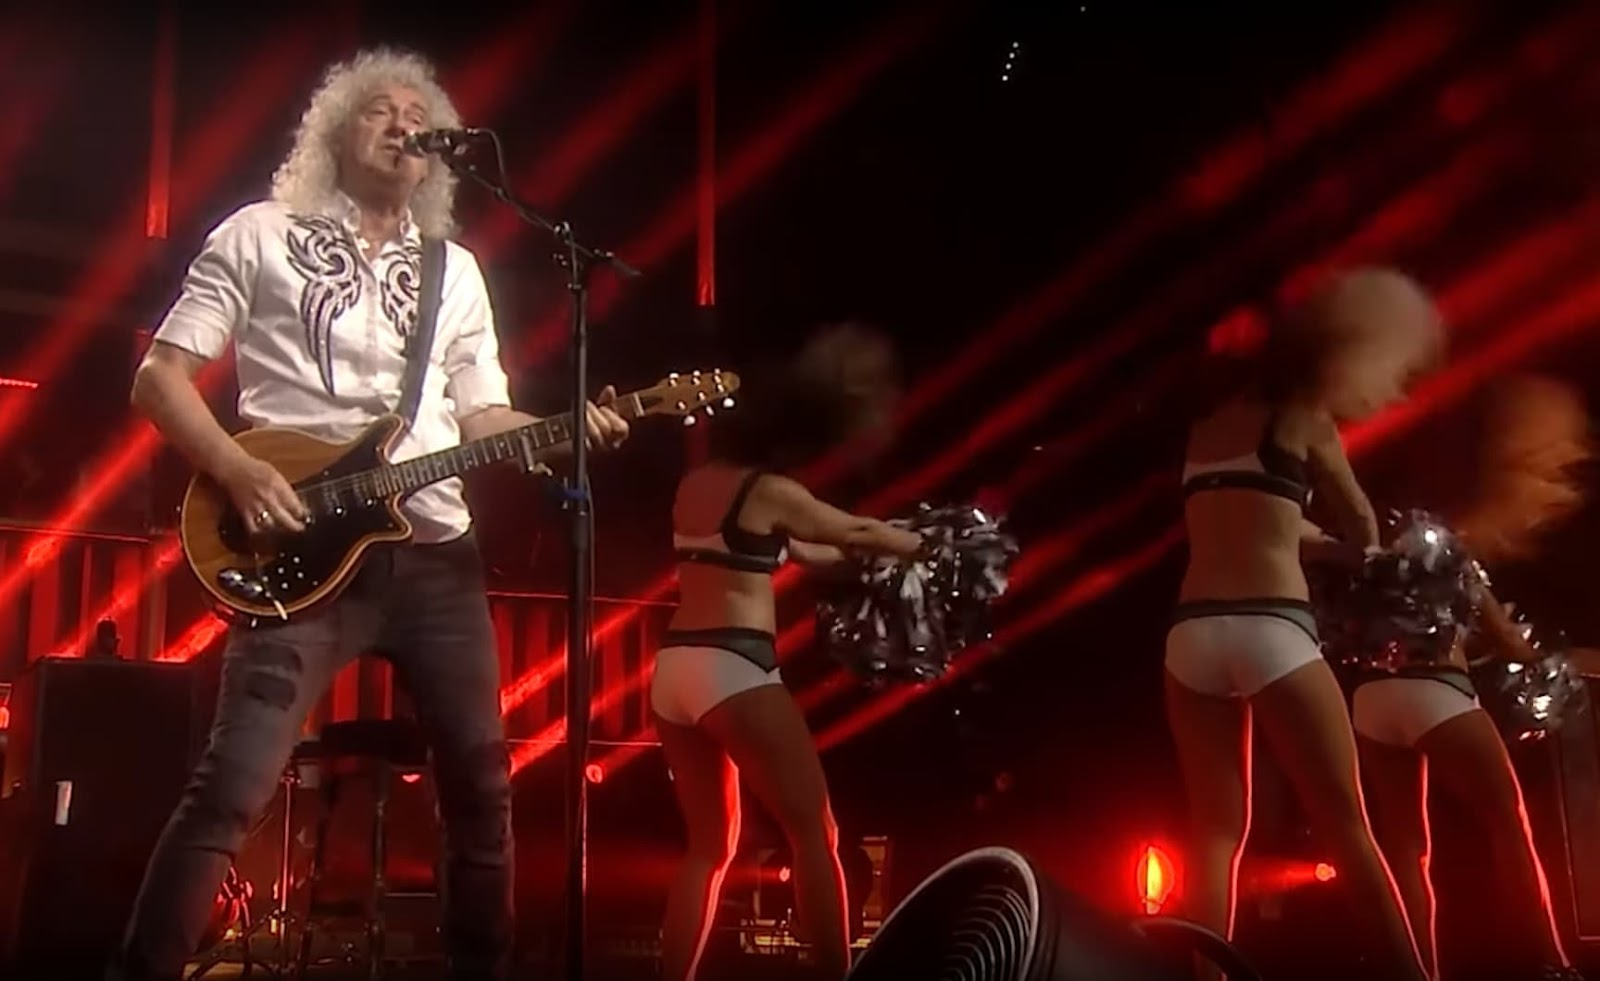 Queen + Adam Lambert mit Fat Bottomed Girls | Live mit den Philadelphia Eagles Cheerleadern 😂